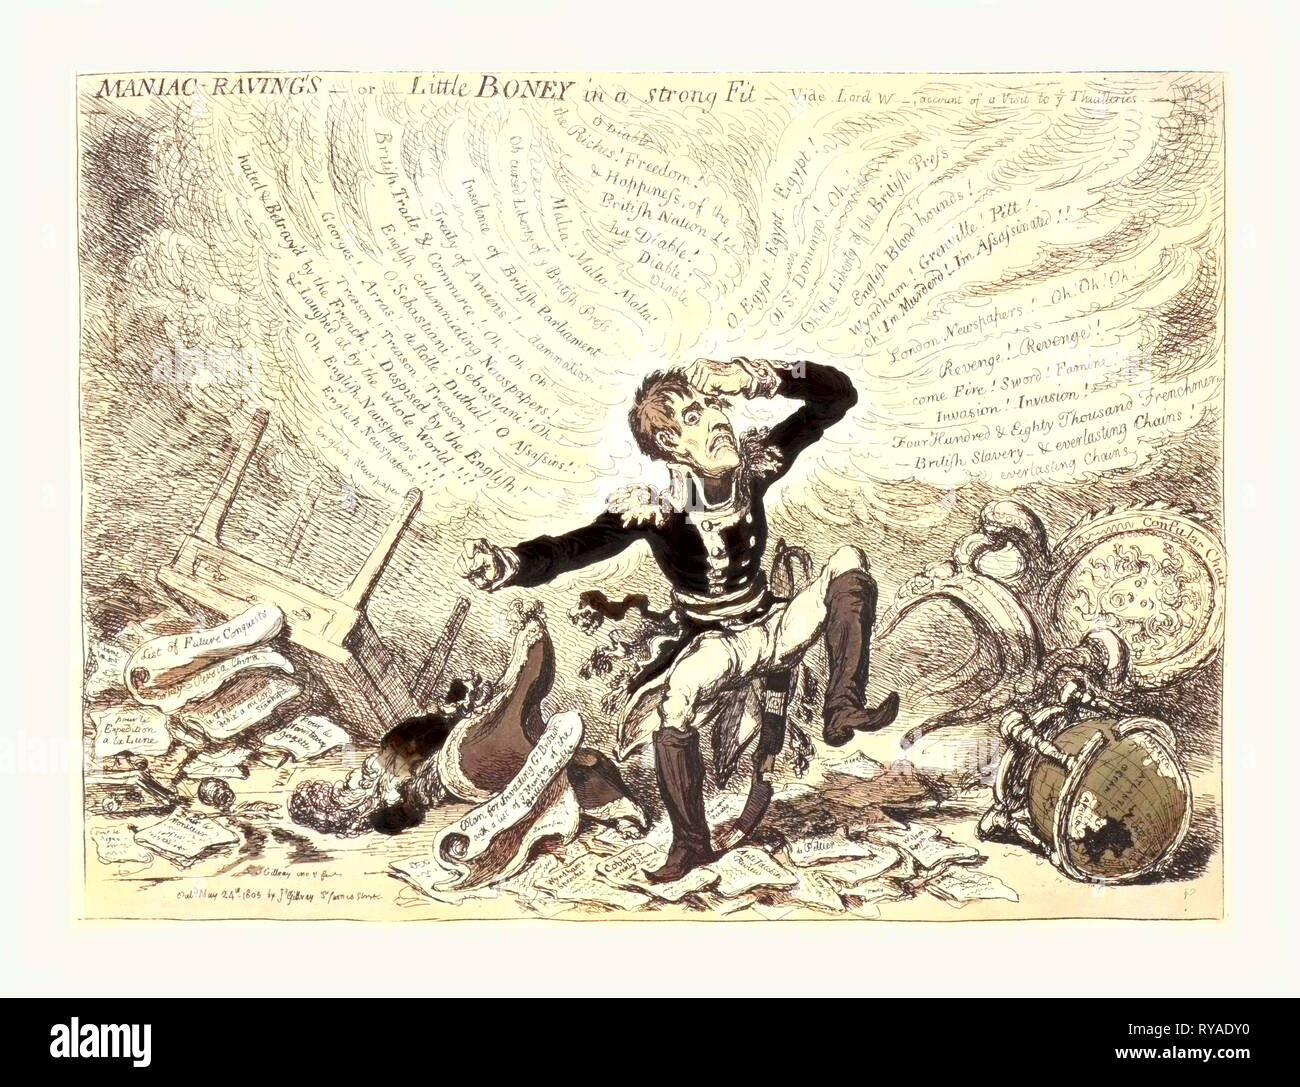 Maniac-Raving's or Little Boney in a Strong Fit, Gillray, James, 1756-1815, Engraver, London, 1803,  Napoleon in a Fury Over Relations Between France and England Stock Photo